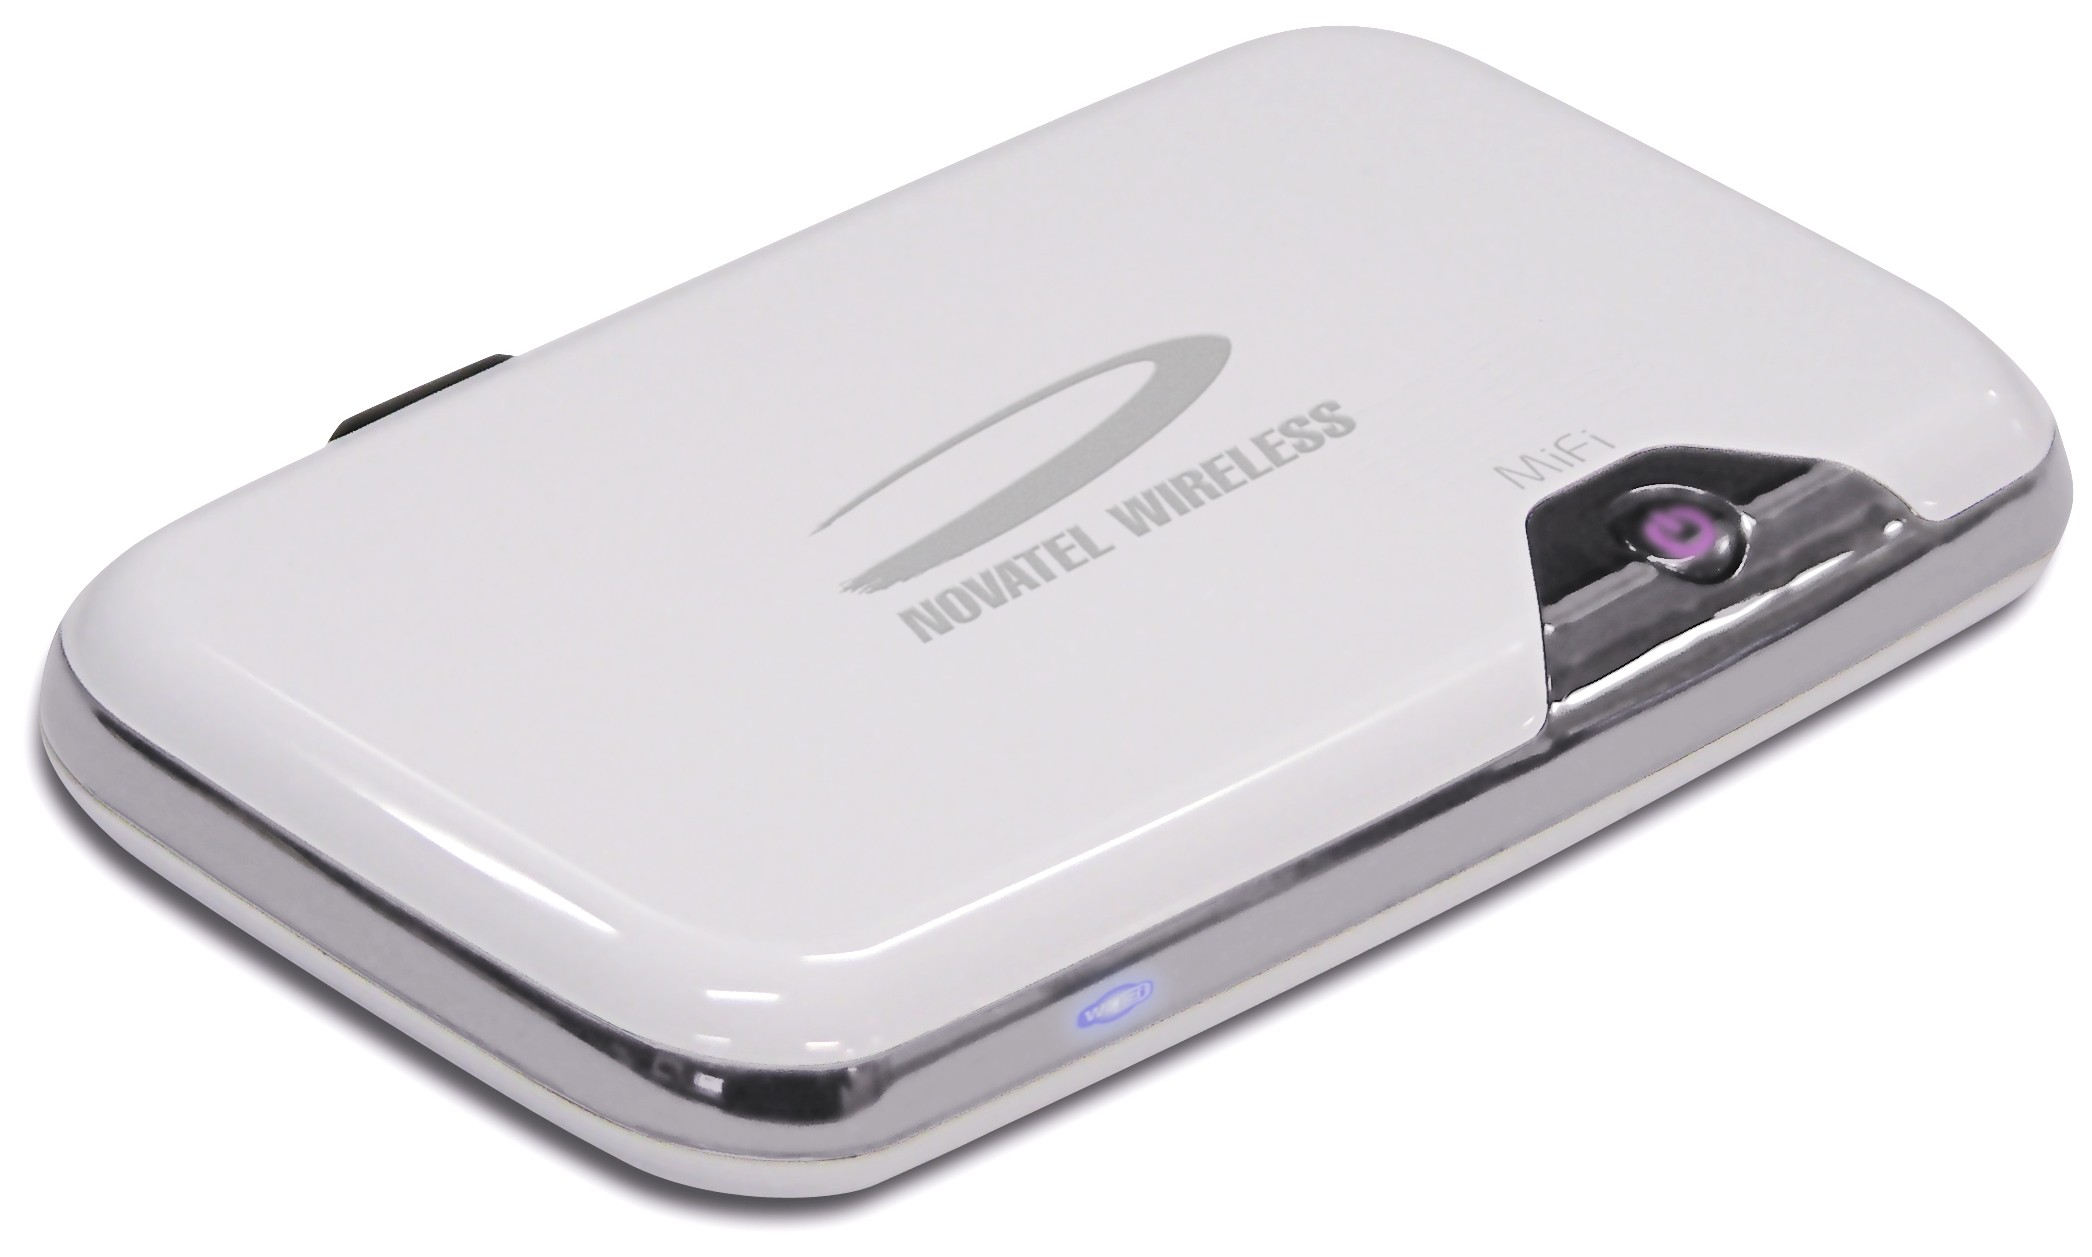 Novatel MiFi 2352 HSPA personal hotspot shipping June 20th